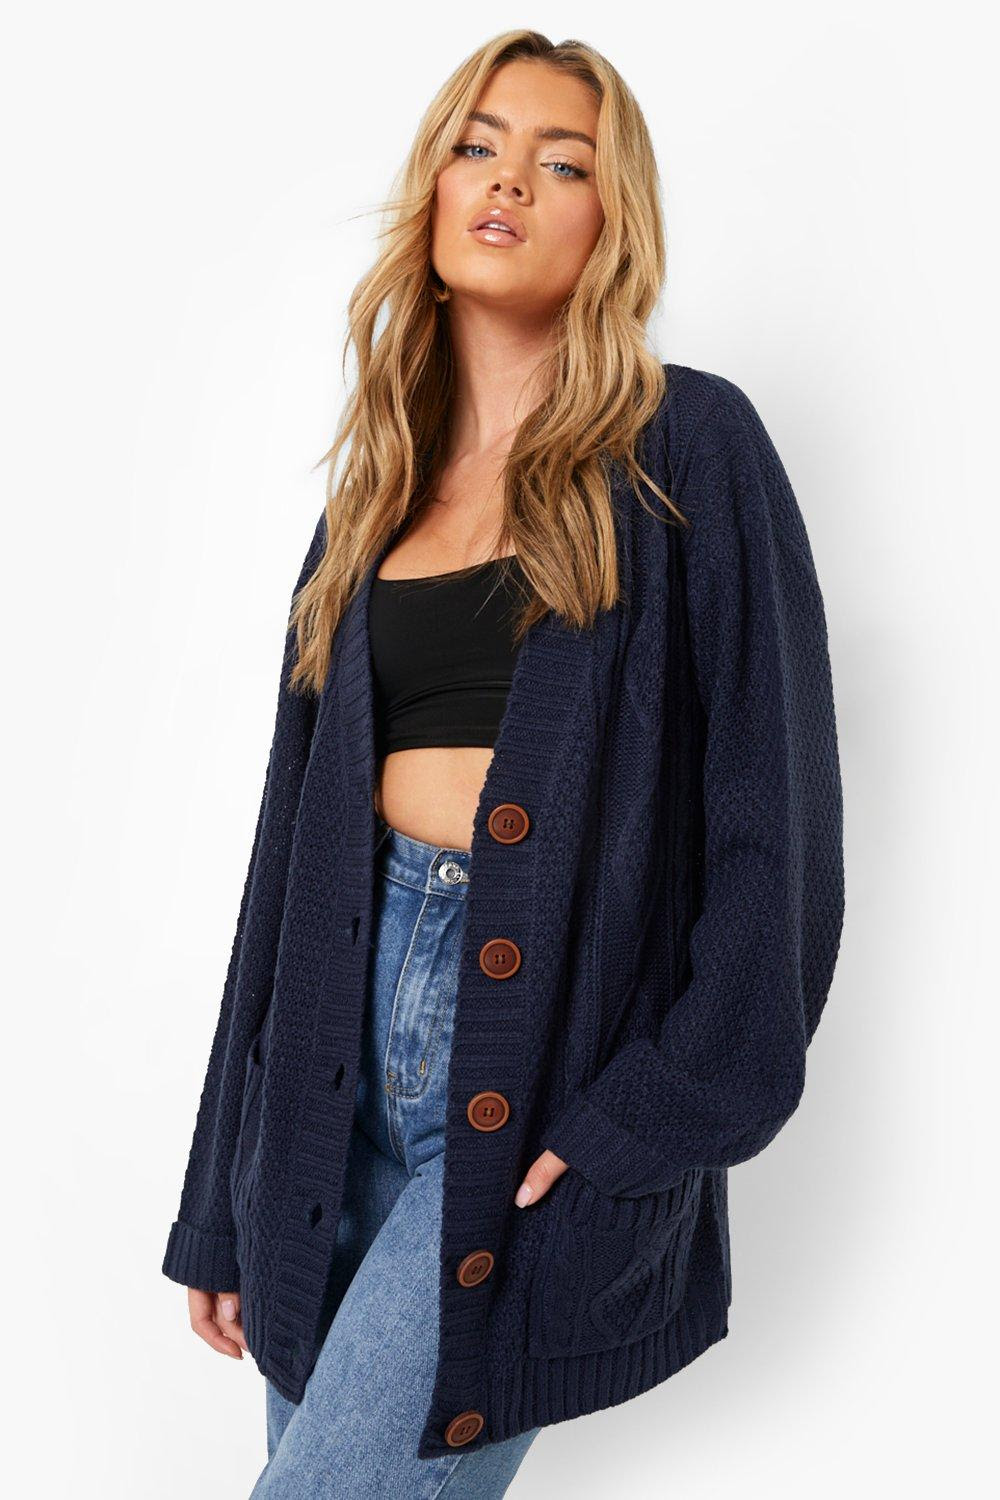 For clothing cardigans boyfriend jcpenney women at wish